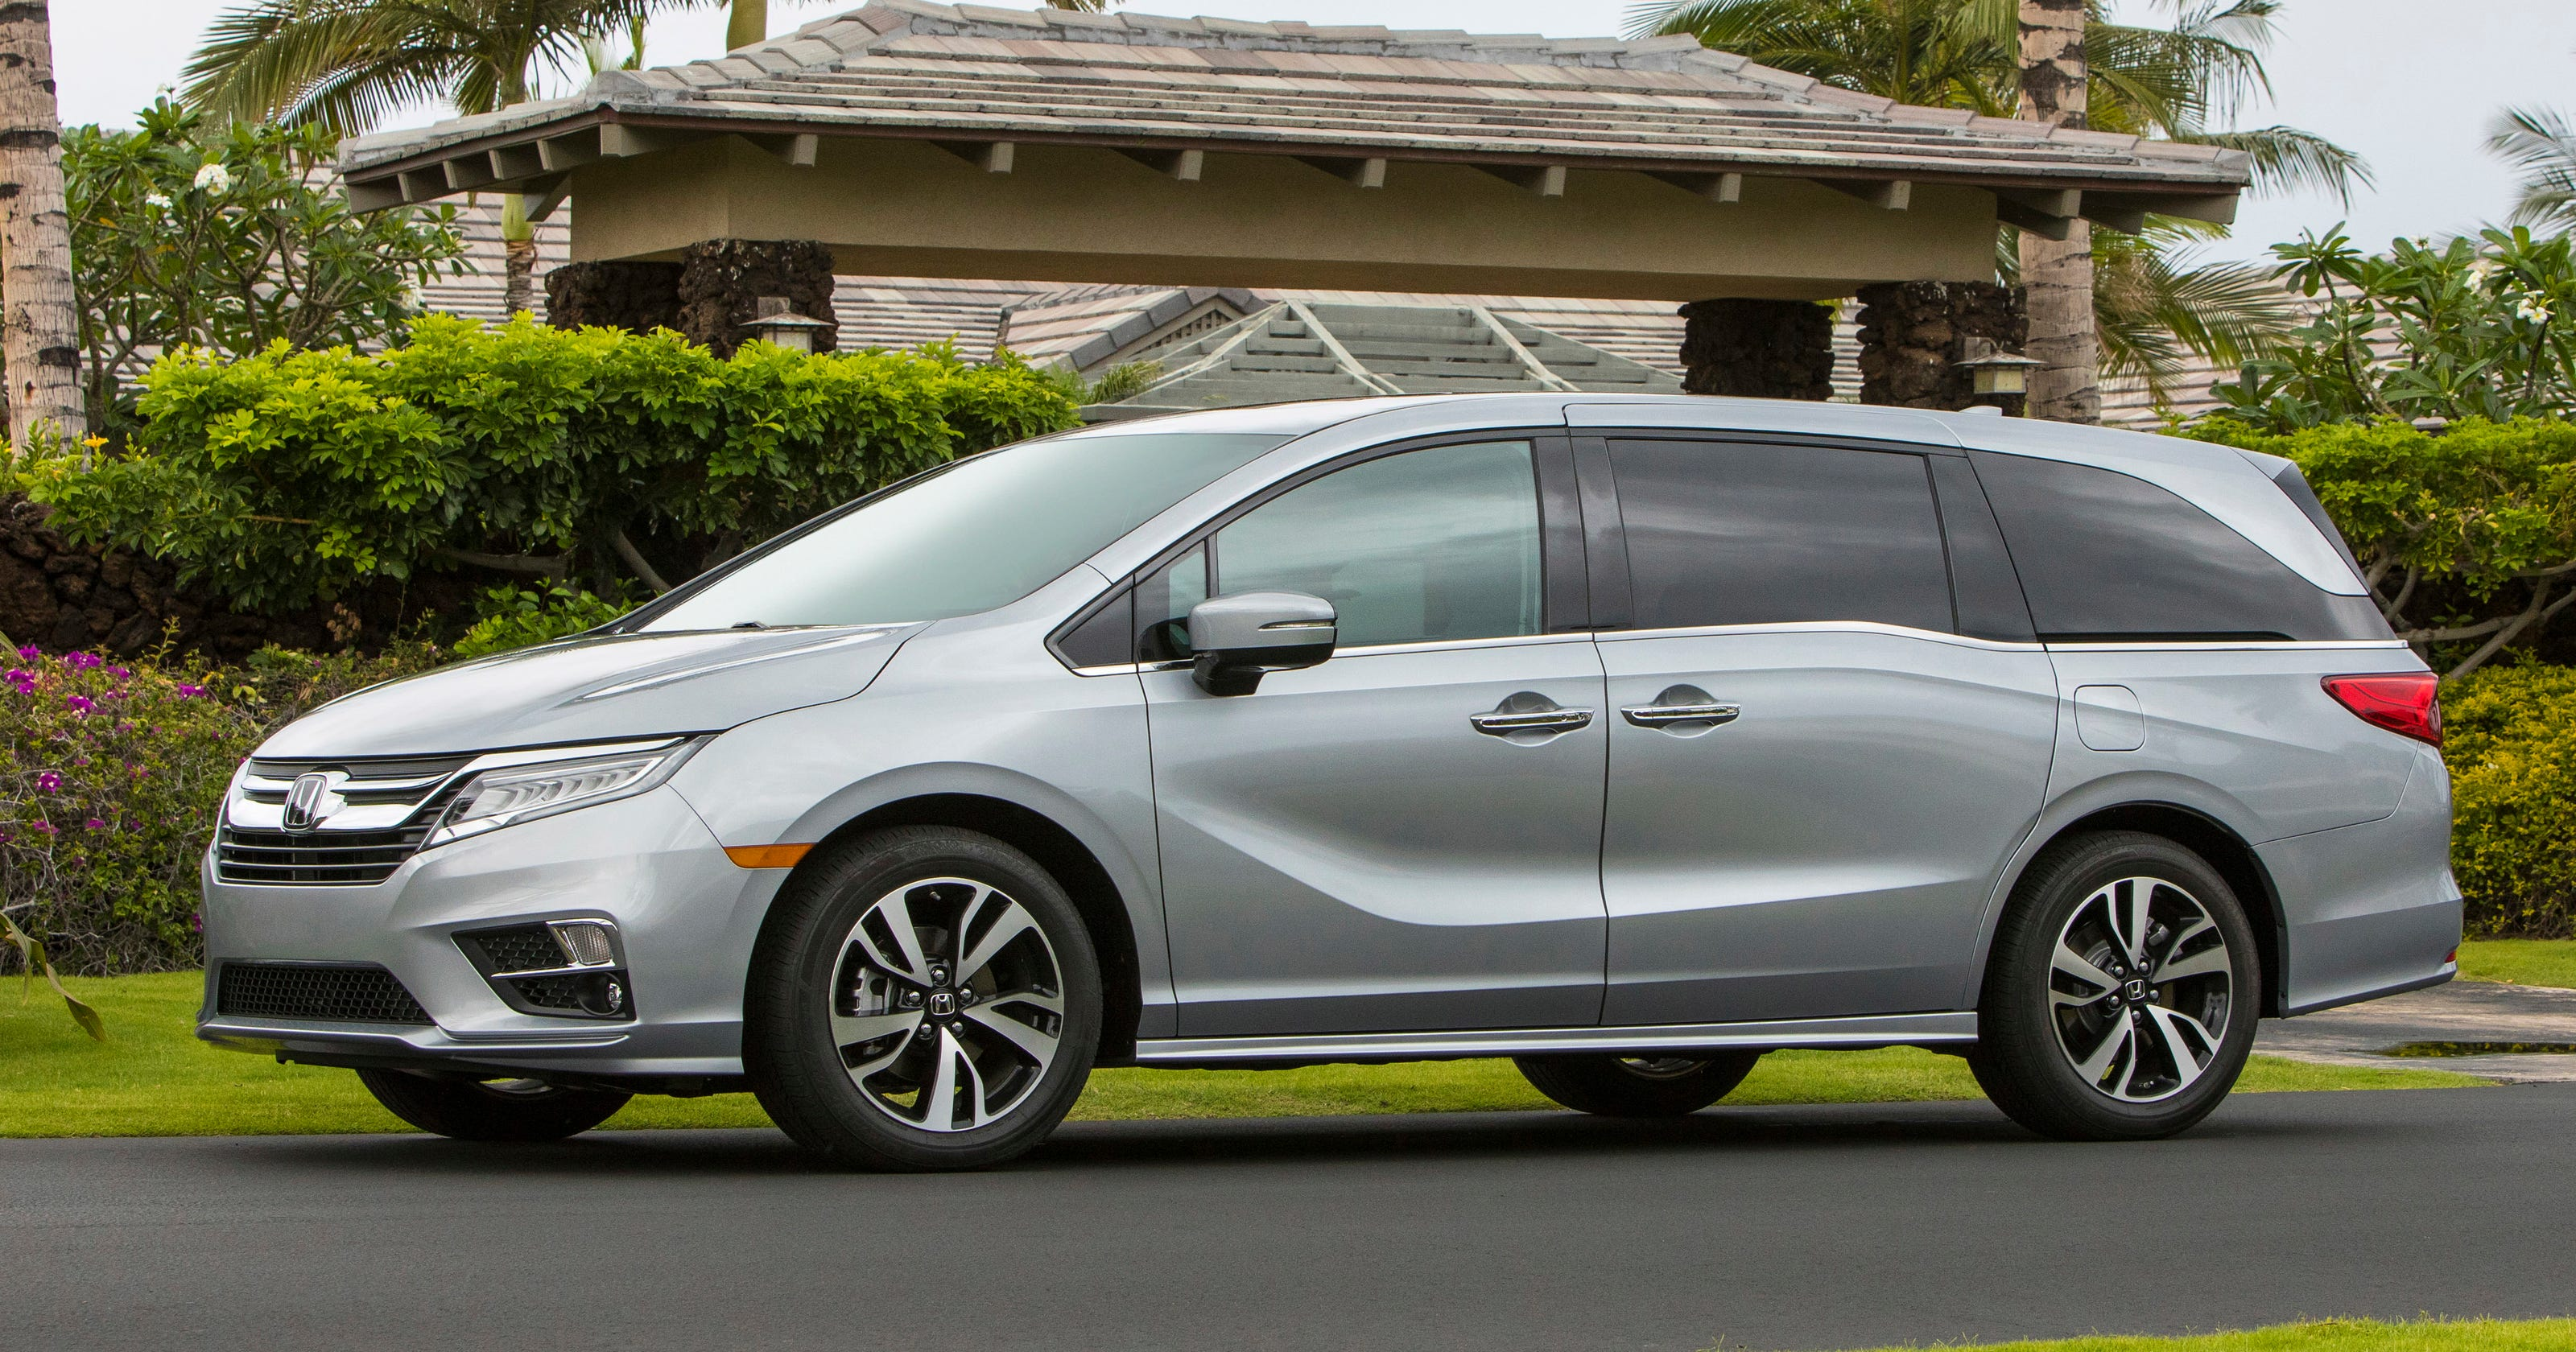 minivan matchup edmunds compares chrysler pacifica and. Black Bedroom Furniture Sets. Home Design Ideas